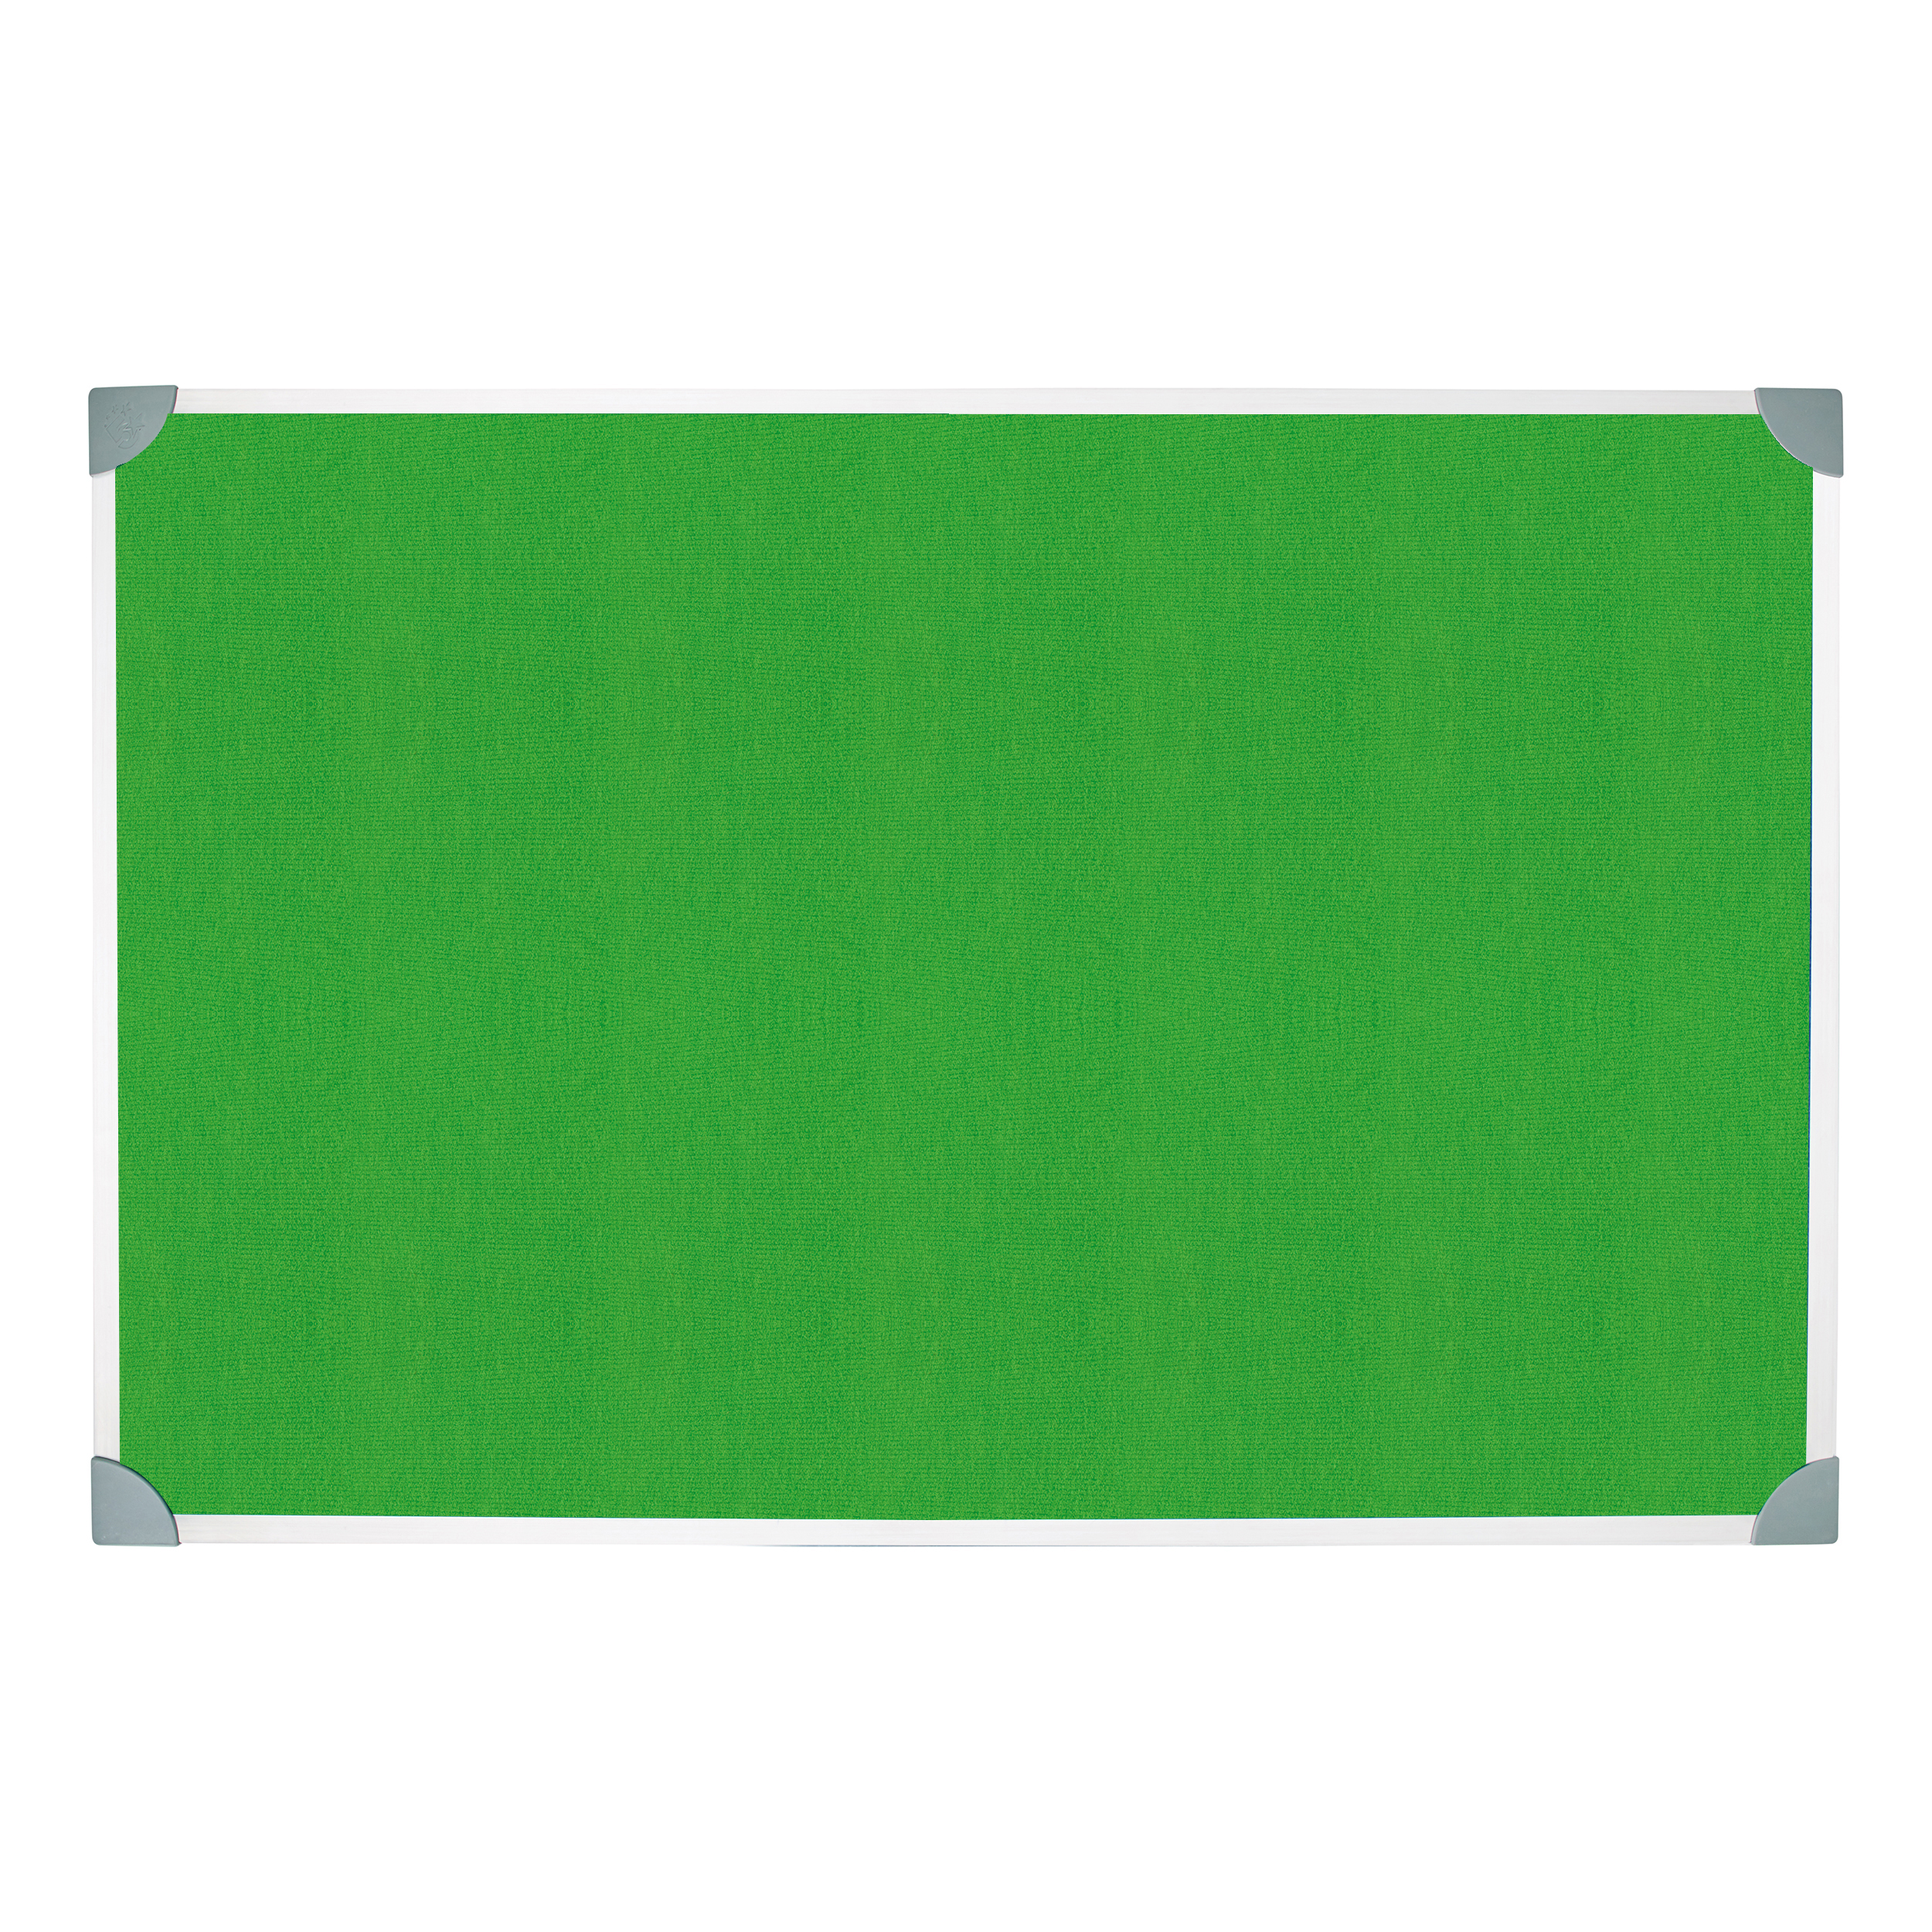 Bulletin boards or accessories 5 Star Green Felt Noticeboard 900x600mm Aluminium Frame